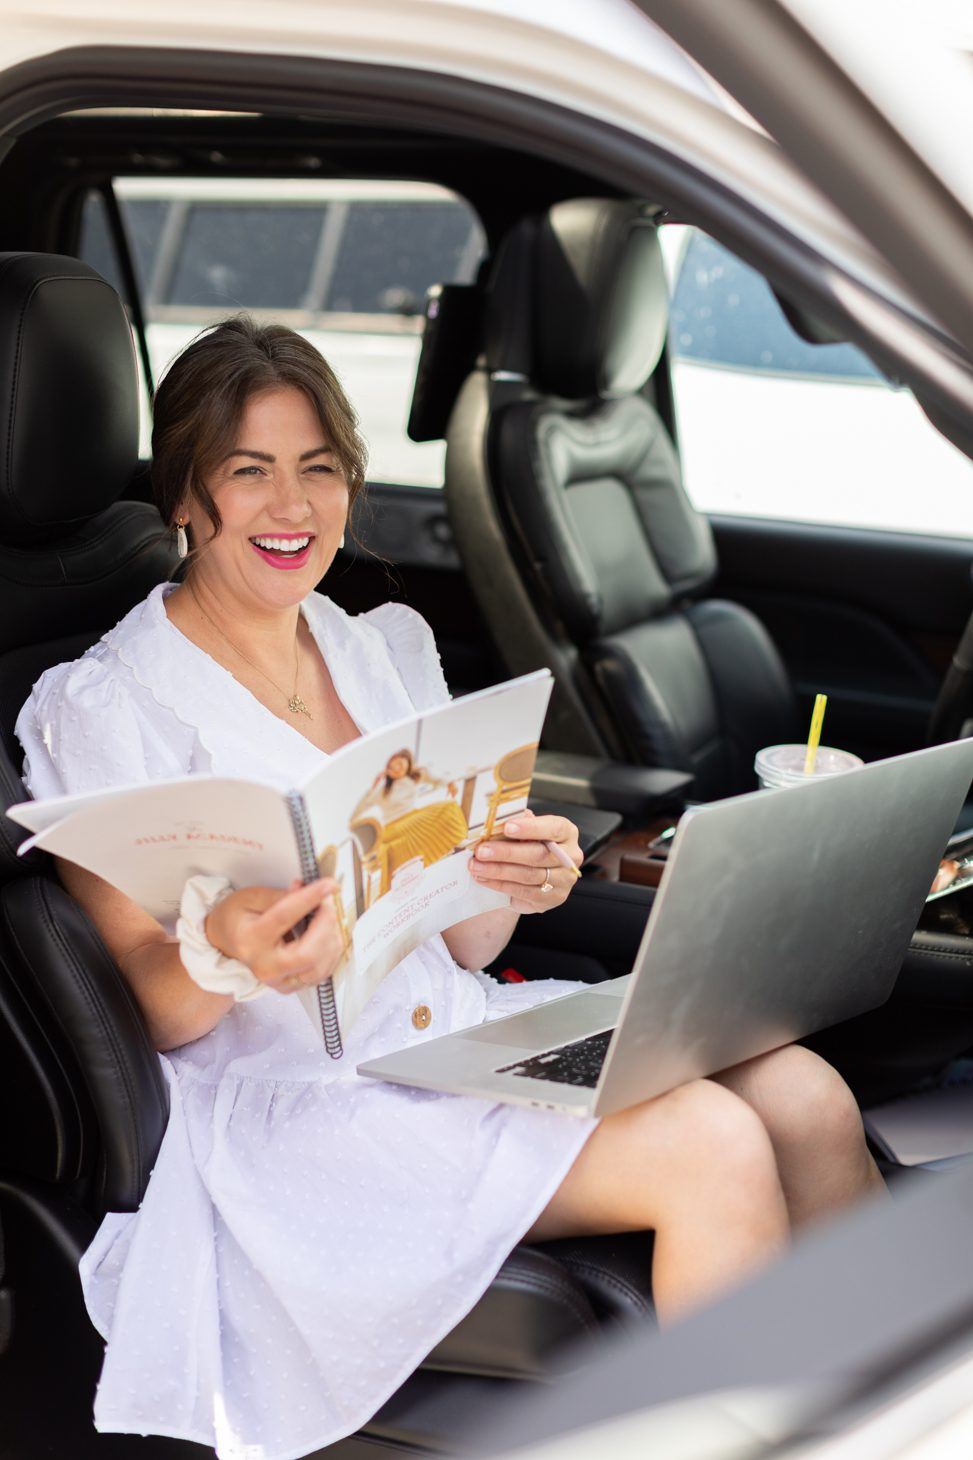 Jillian Harris checking in on The Jilly Academy Alumni during the summer, on-the-go in her car wearing a white dress.